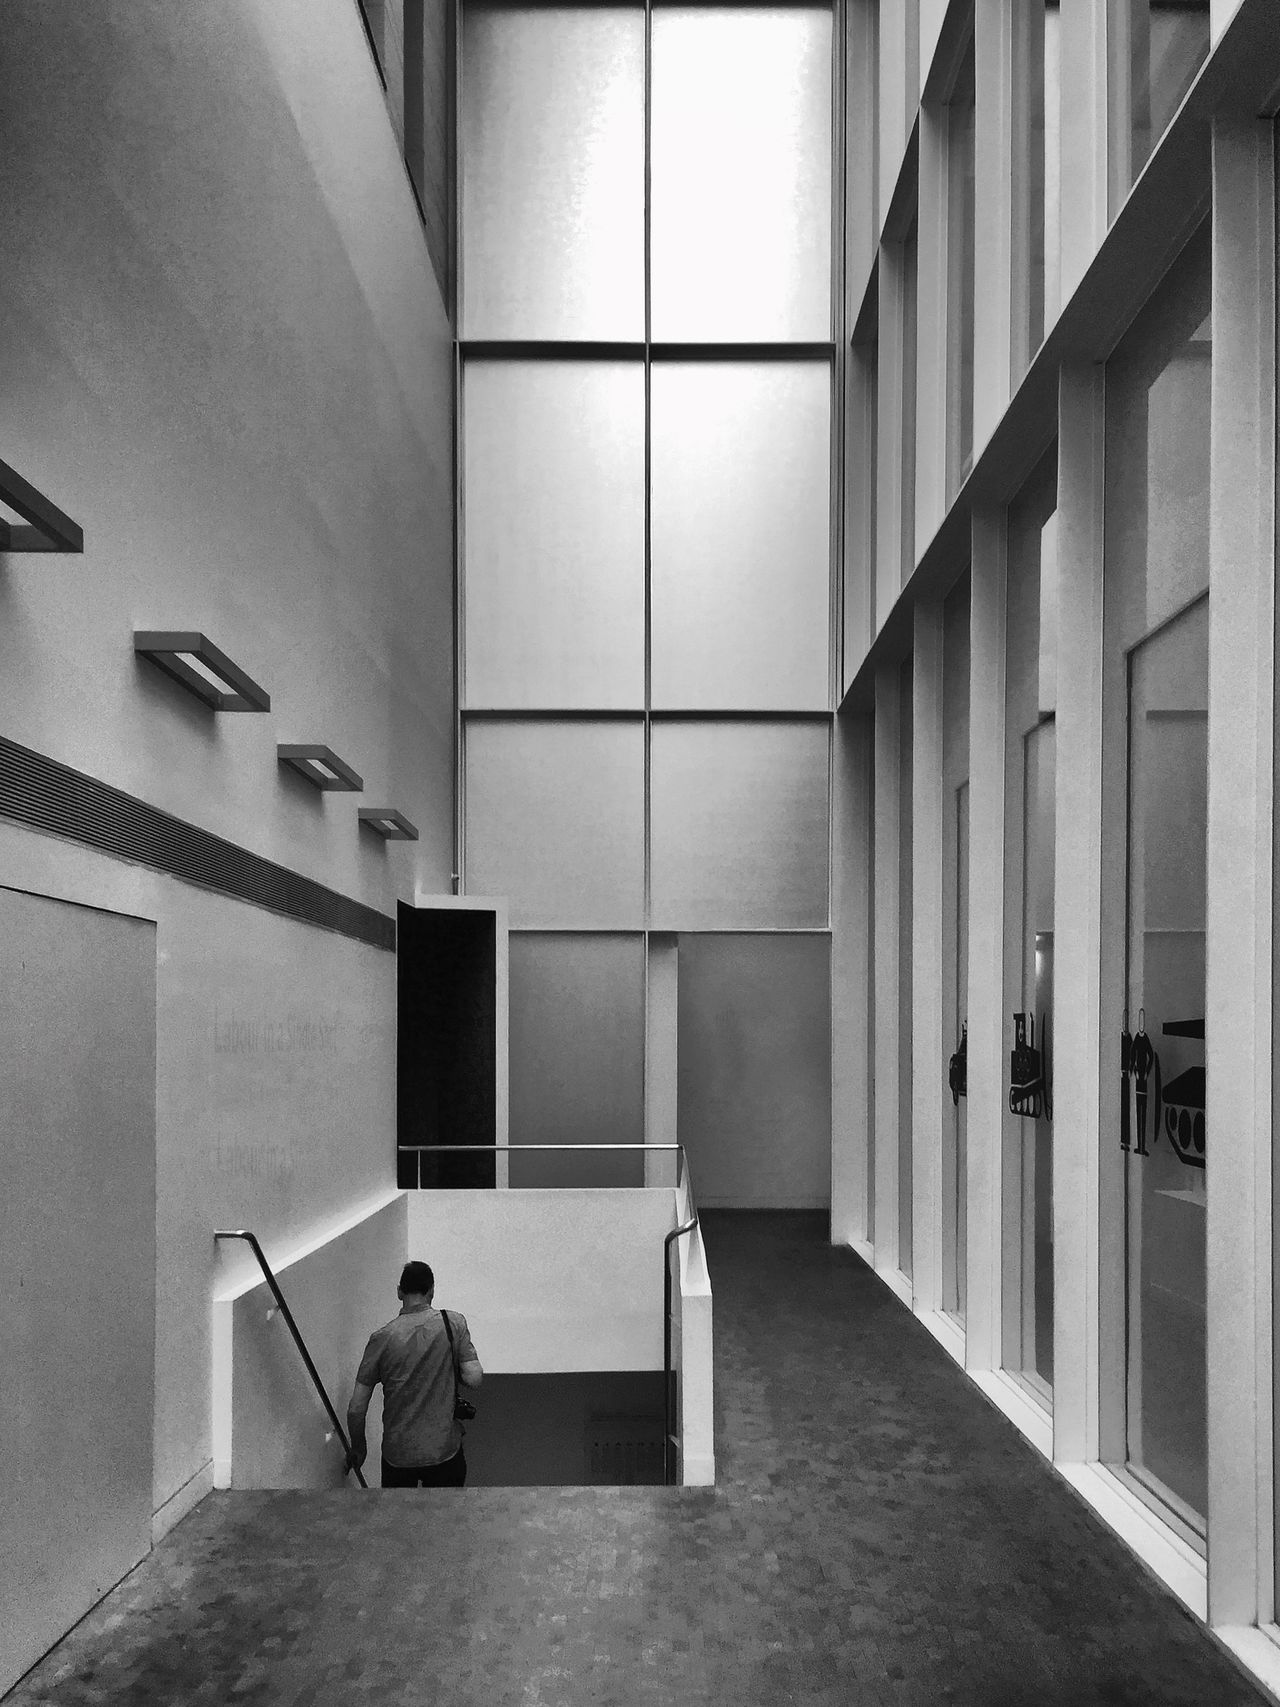 63 / 365 Architecture Black & White Day Descending Design Geometry Indoors  Men Monochrome Photography One Man Only One Person Real People Shapes Stairs